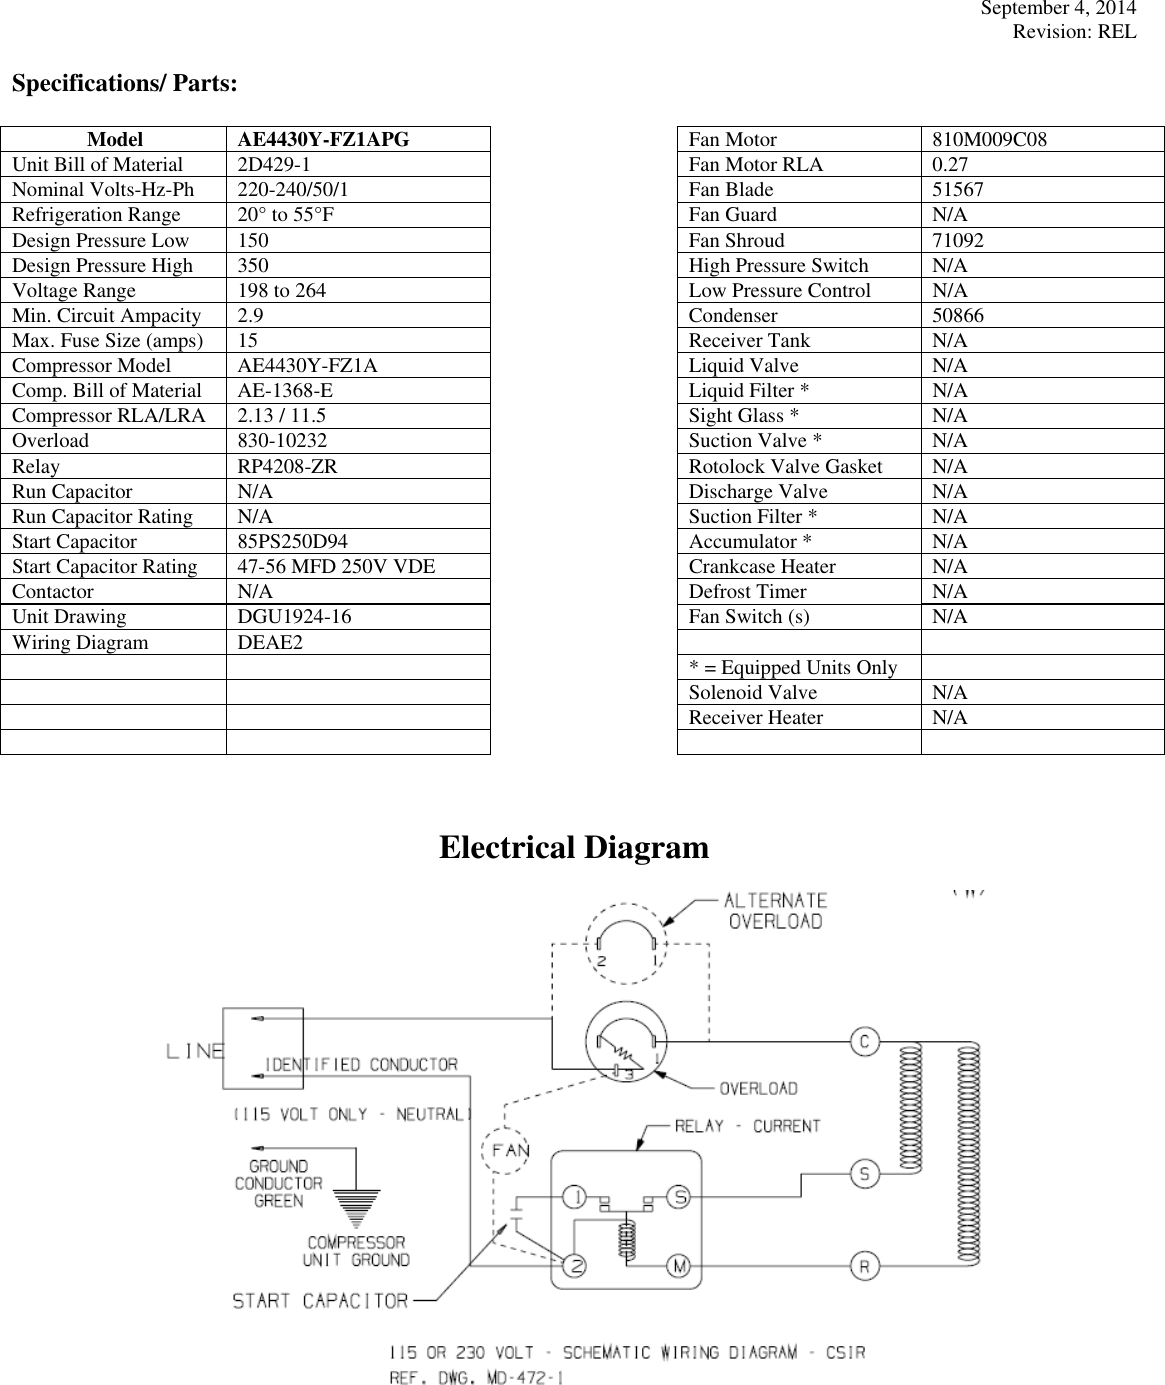 Tecumseh Ae4430y Fz1apg Performance Data Sheet 2d429 1 Rel Accumulator Tank Schematic Page 2 Of